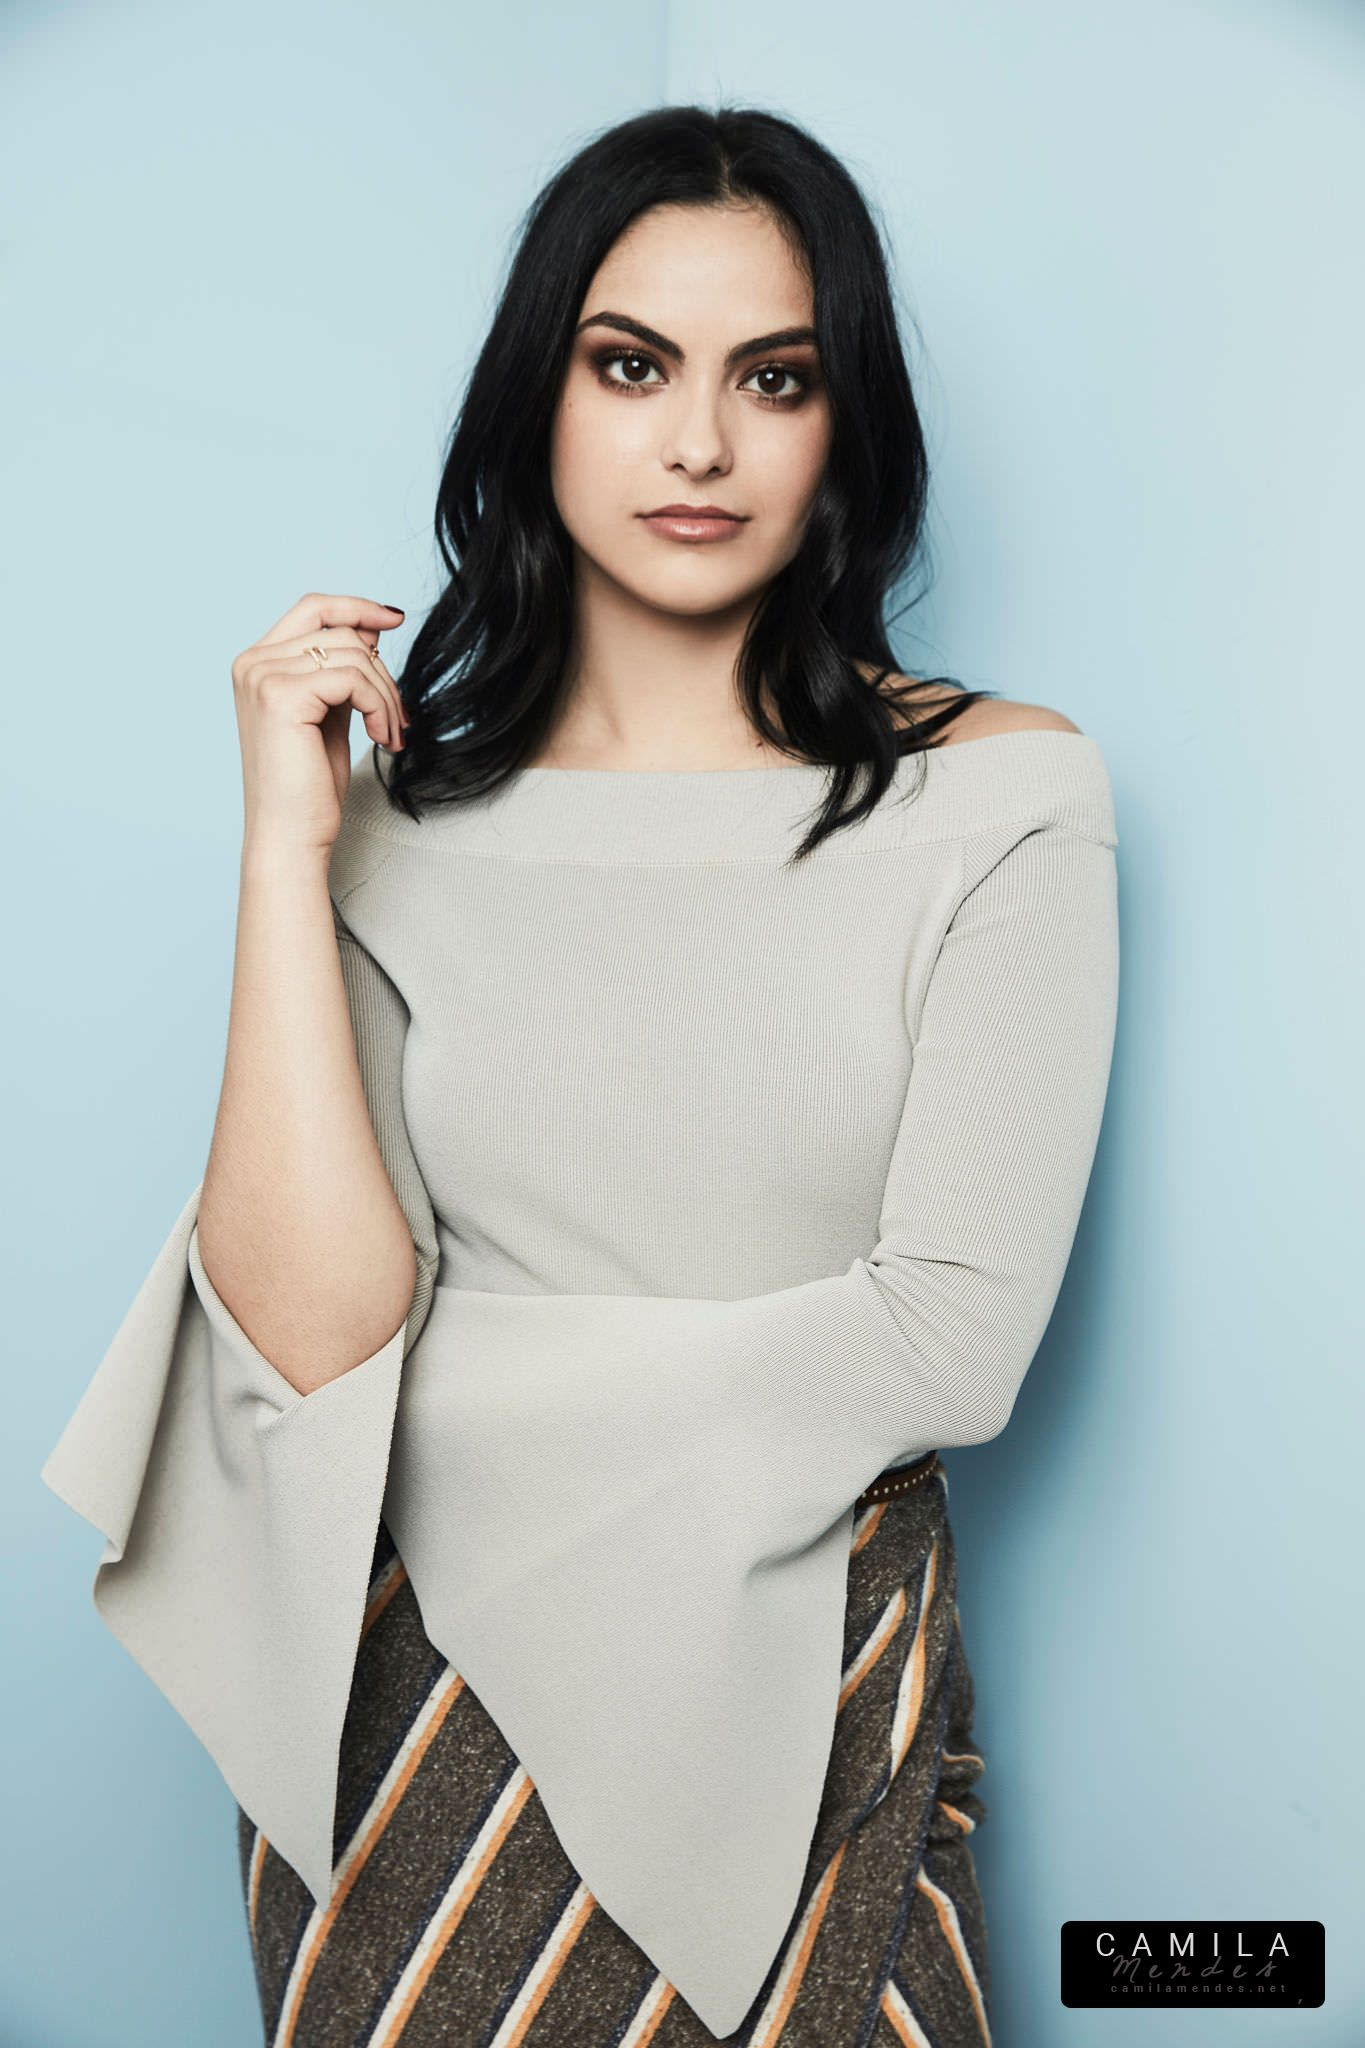 Camila Mendes naked (59 pictures), foto Boobs, Twitter, lingerie 2015